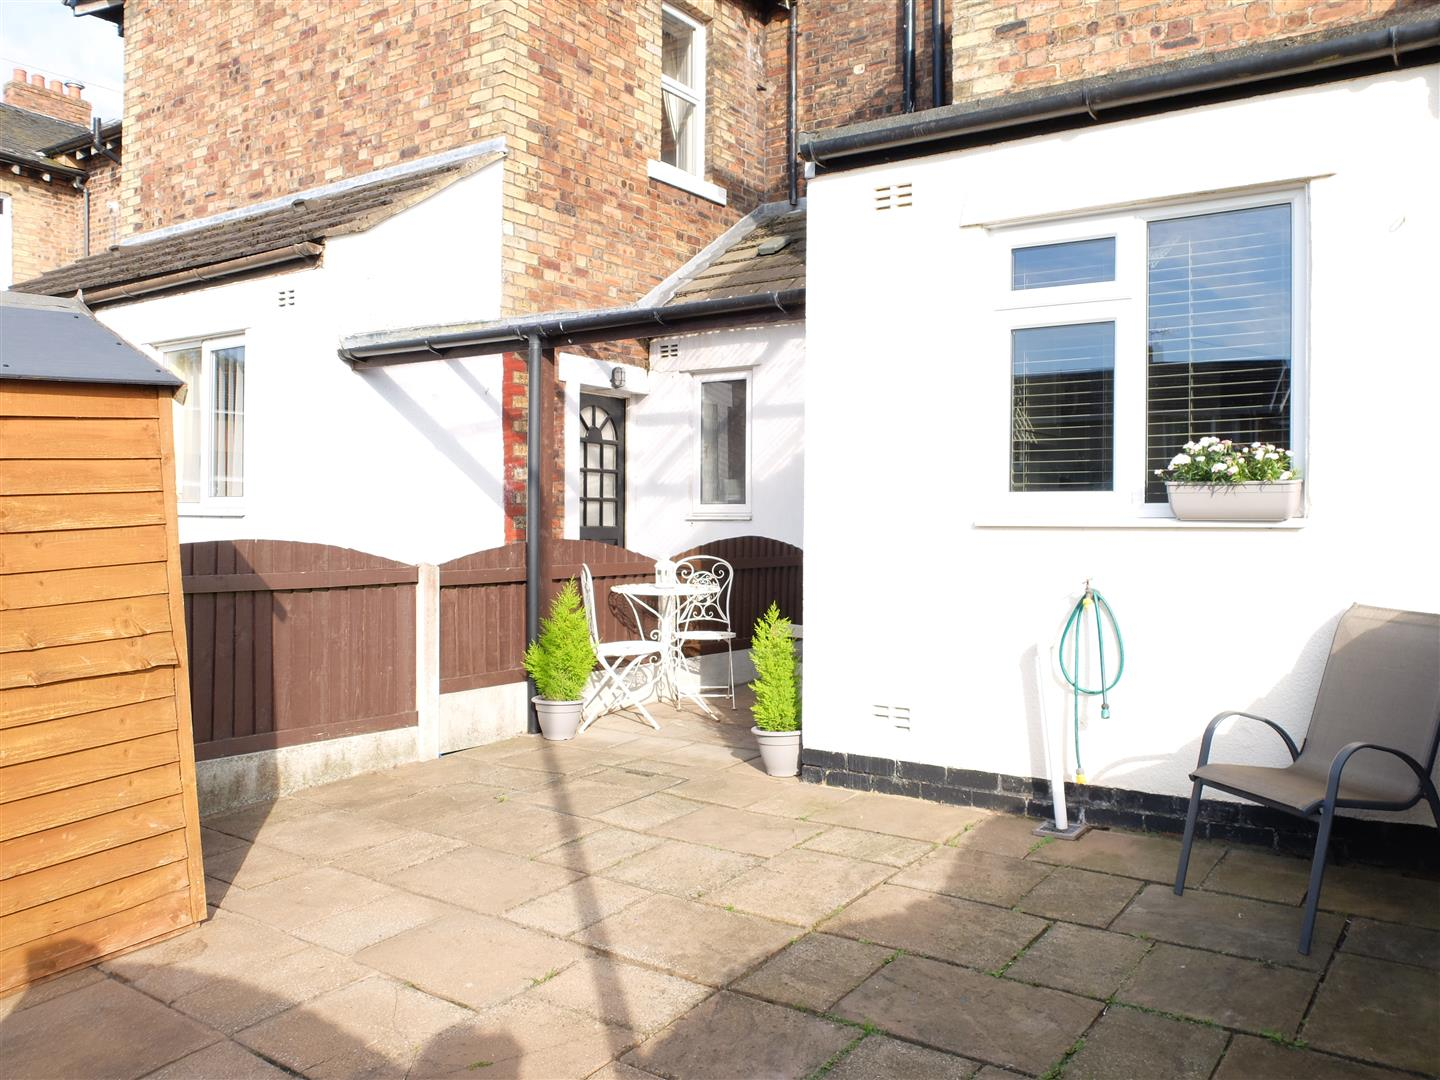 7, Caledonian Buildings Etterby Road Carlisle Home On Sale 125,000